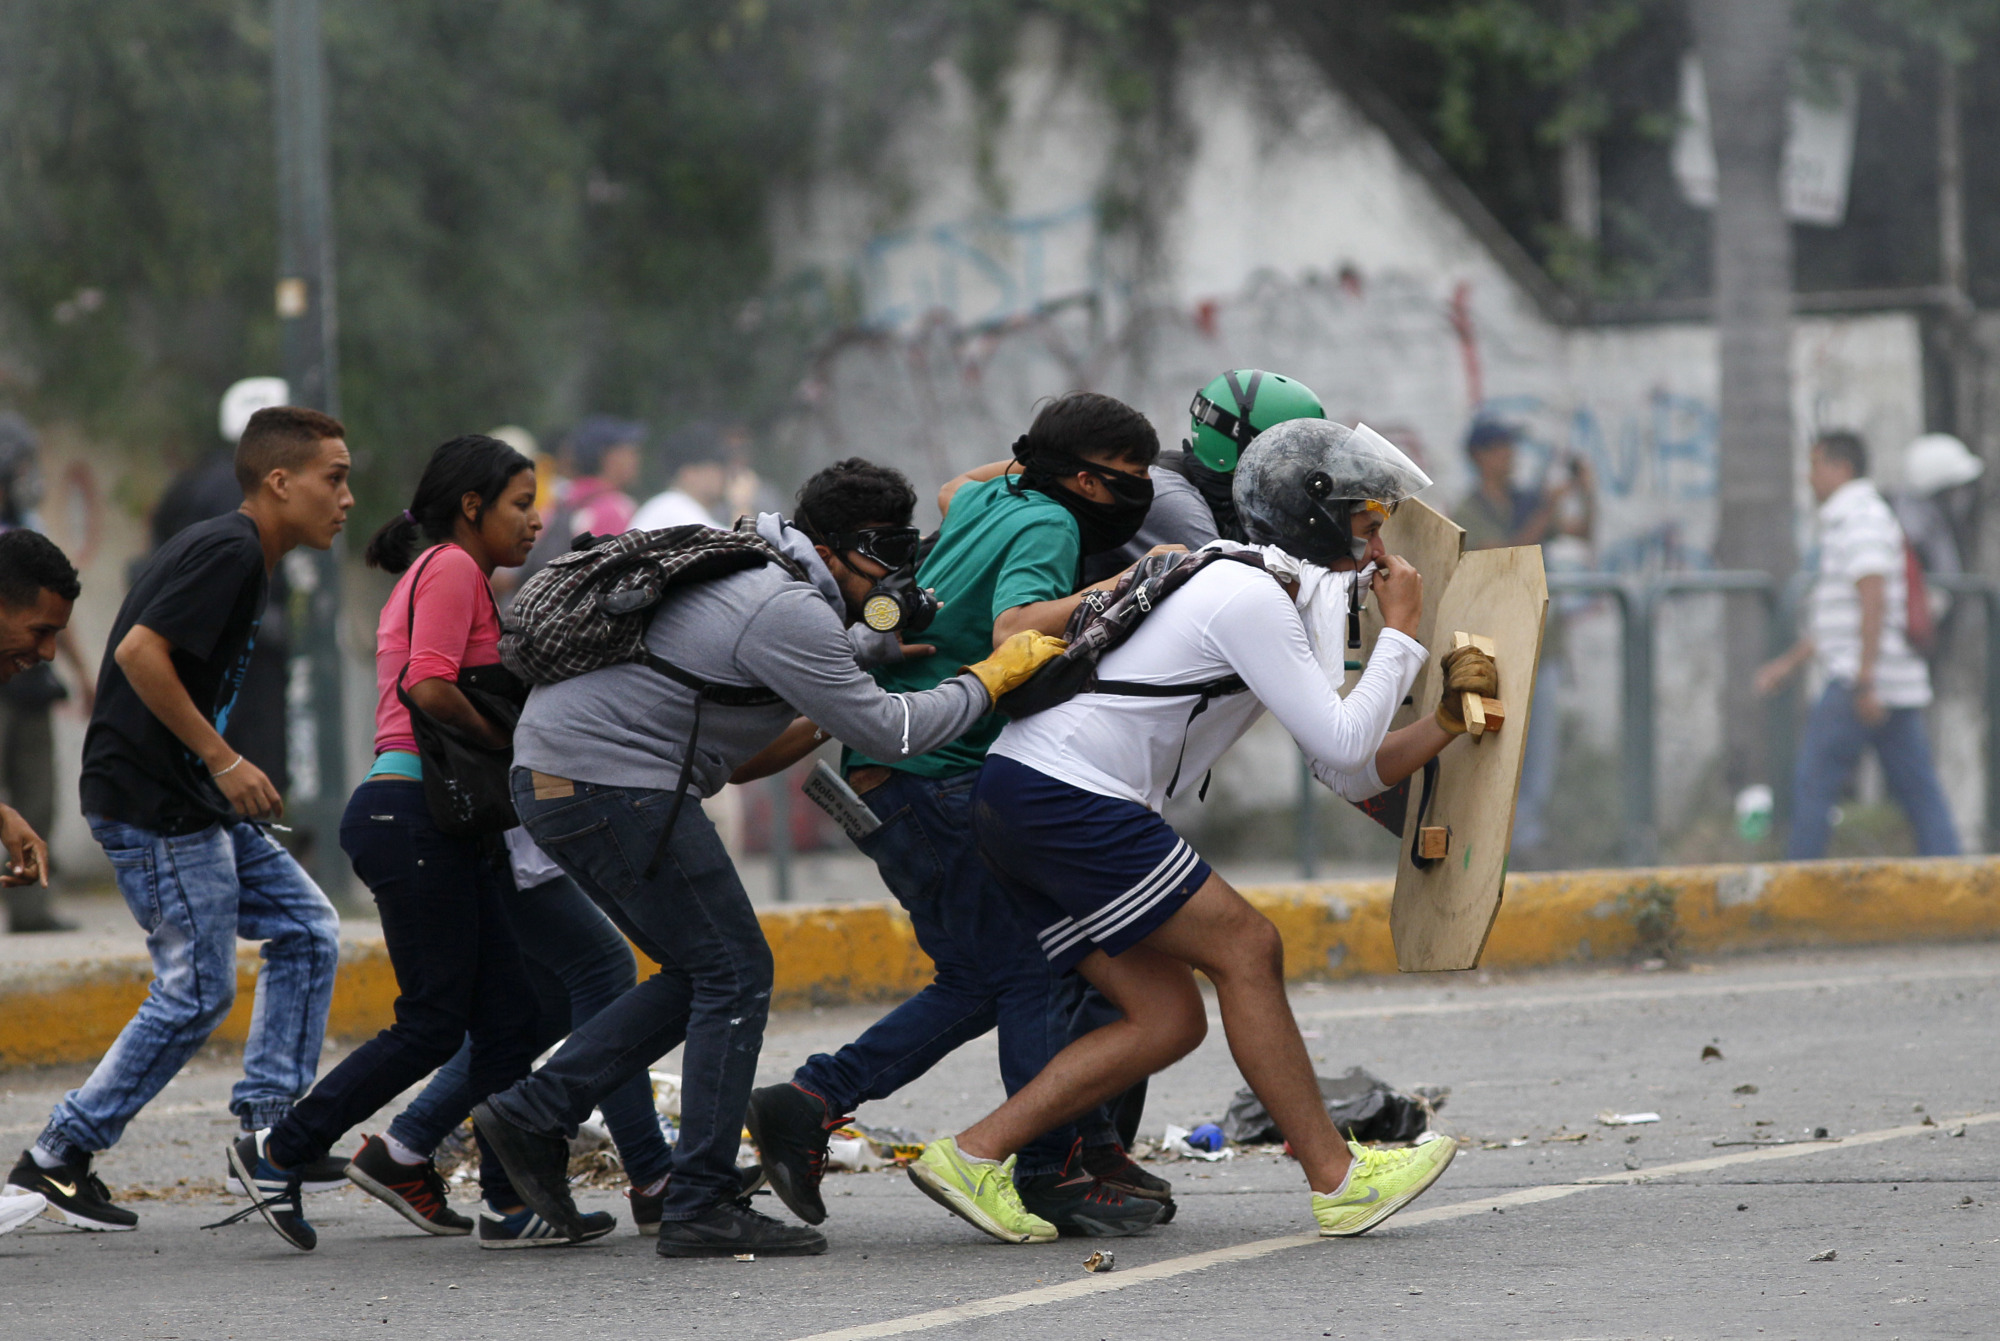 Demonstrators cross the street as they cover themselves with shields during clashes with authorities in Caracas Wednesday. The protest movement has claimed more than 60 lives as it enters its third month. | AP